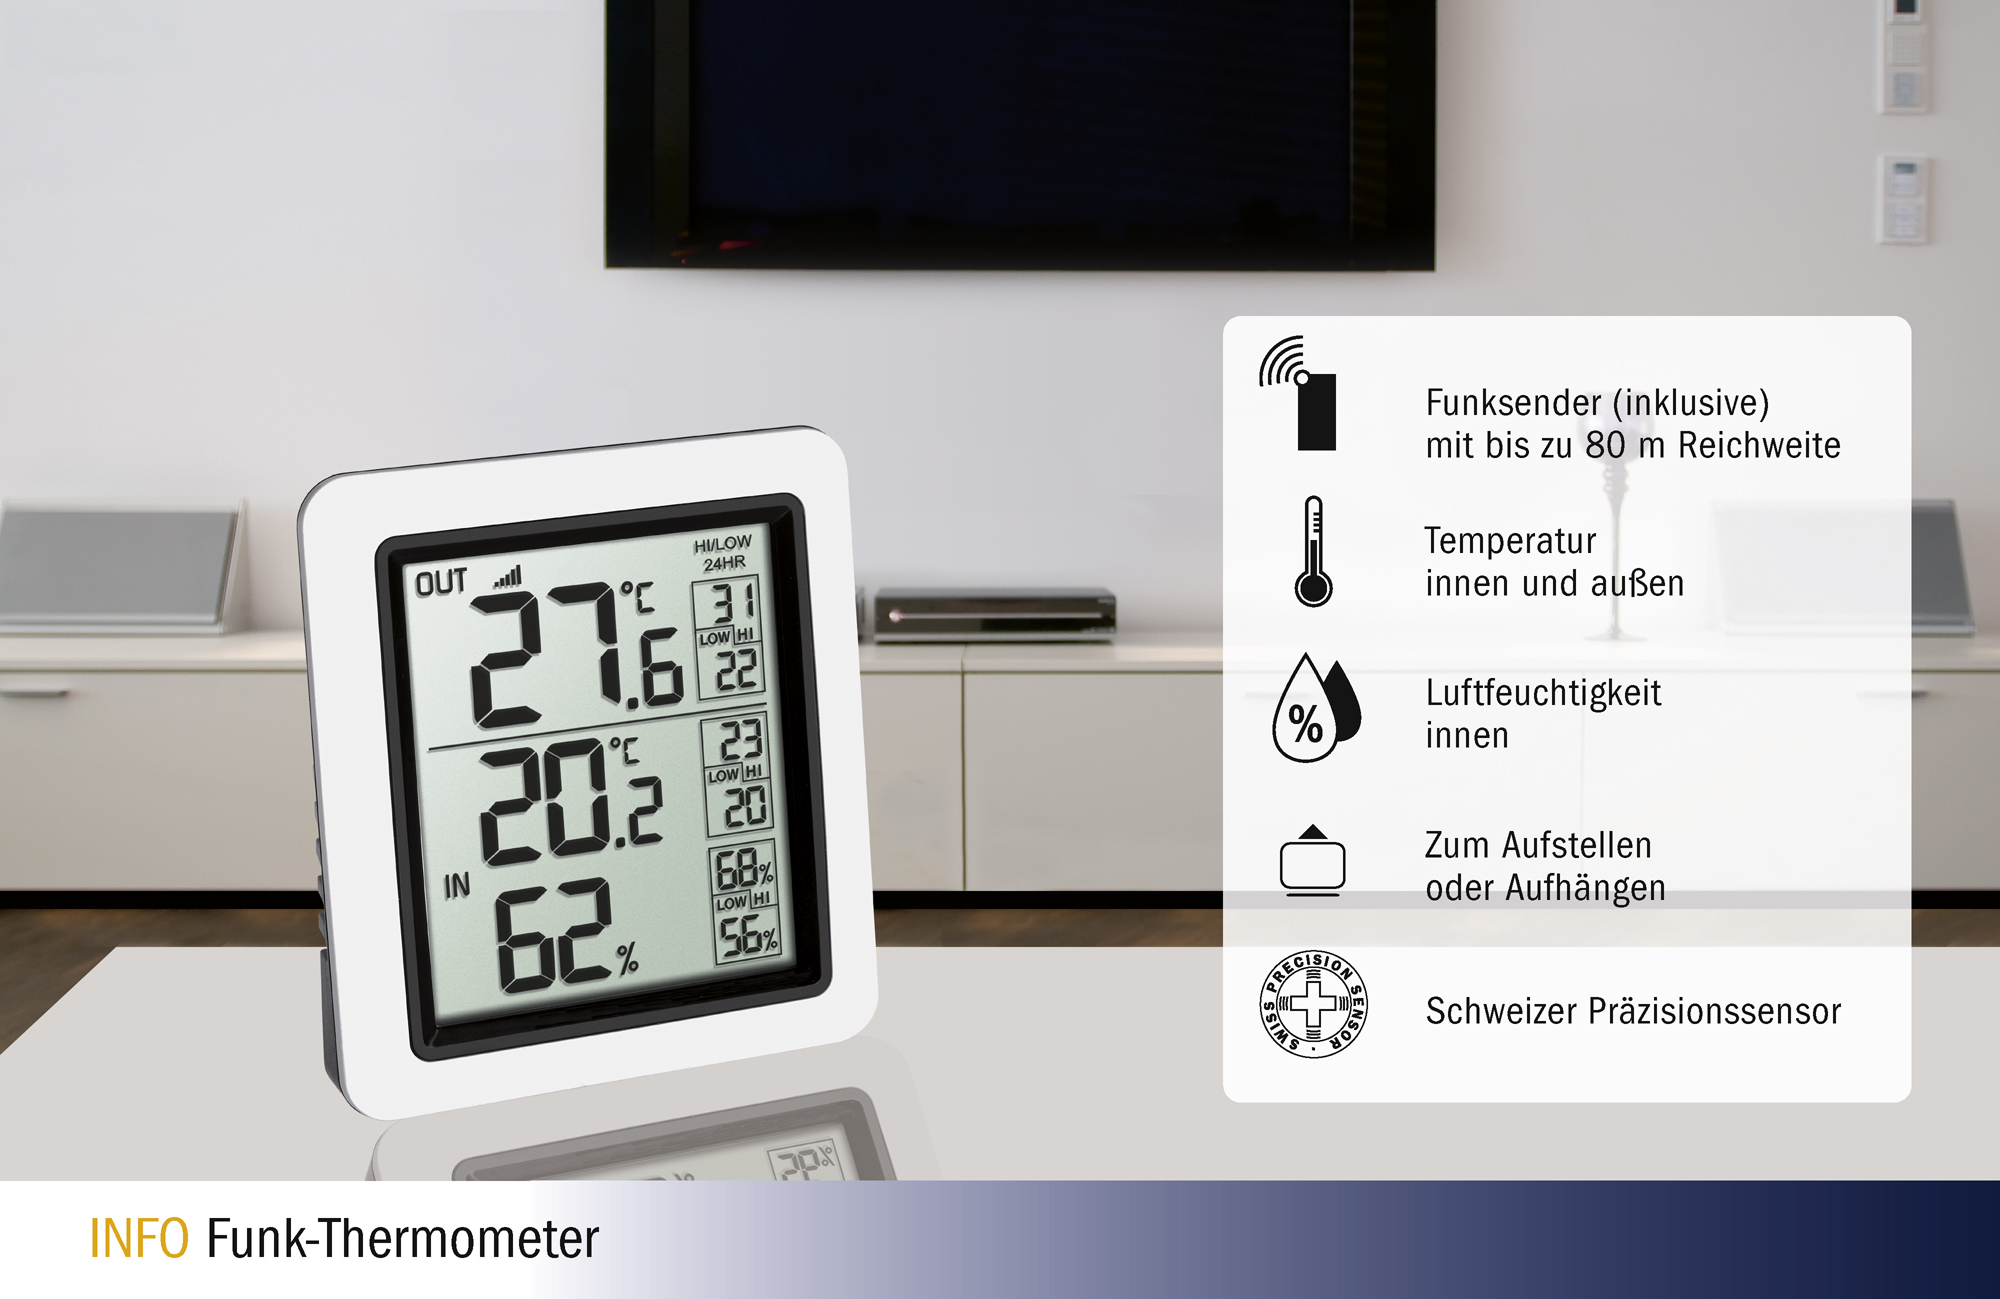 Info_Funk-Thermometer_303065_Icons.jpg